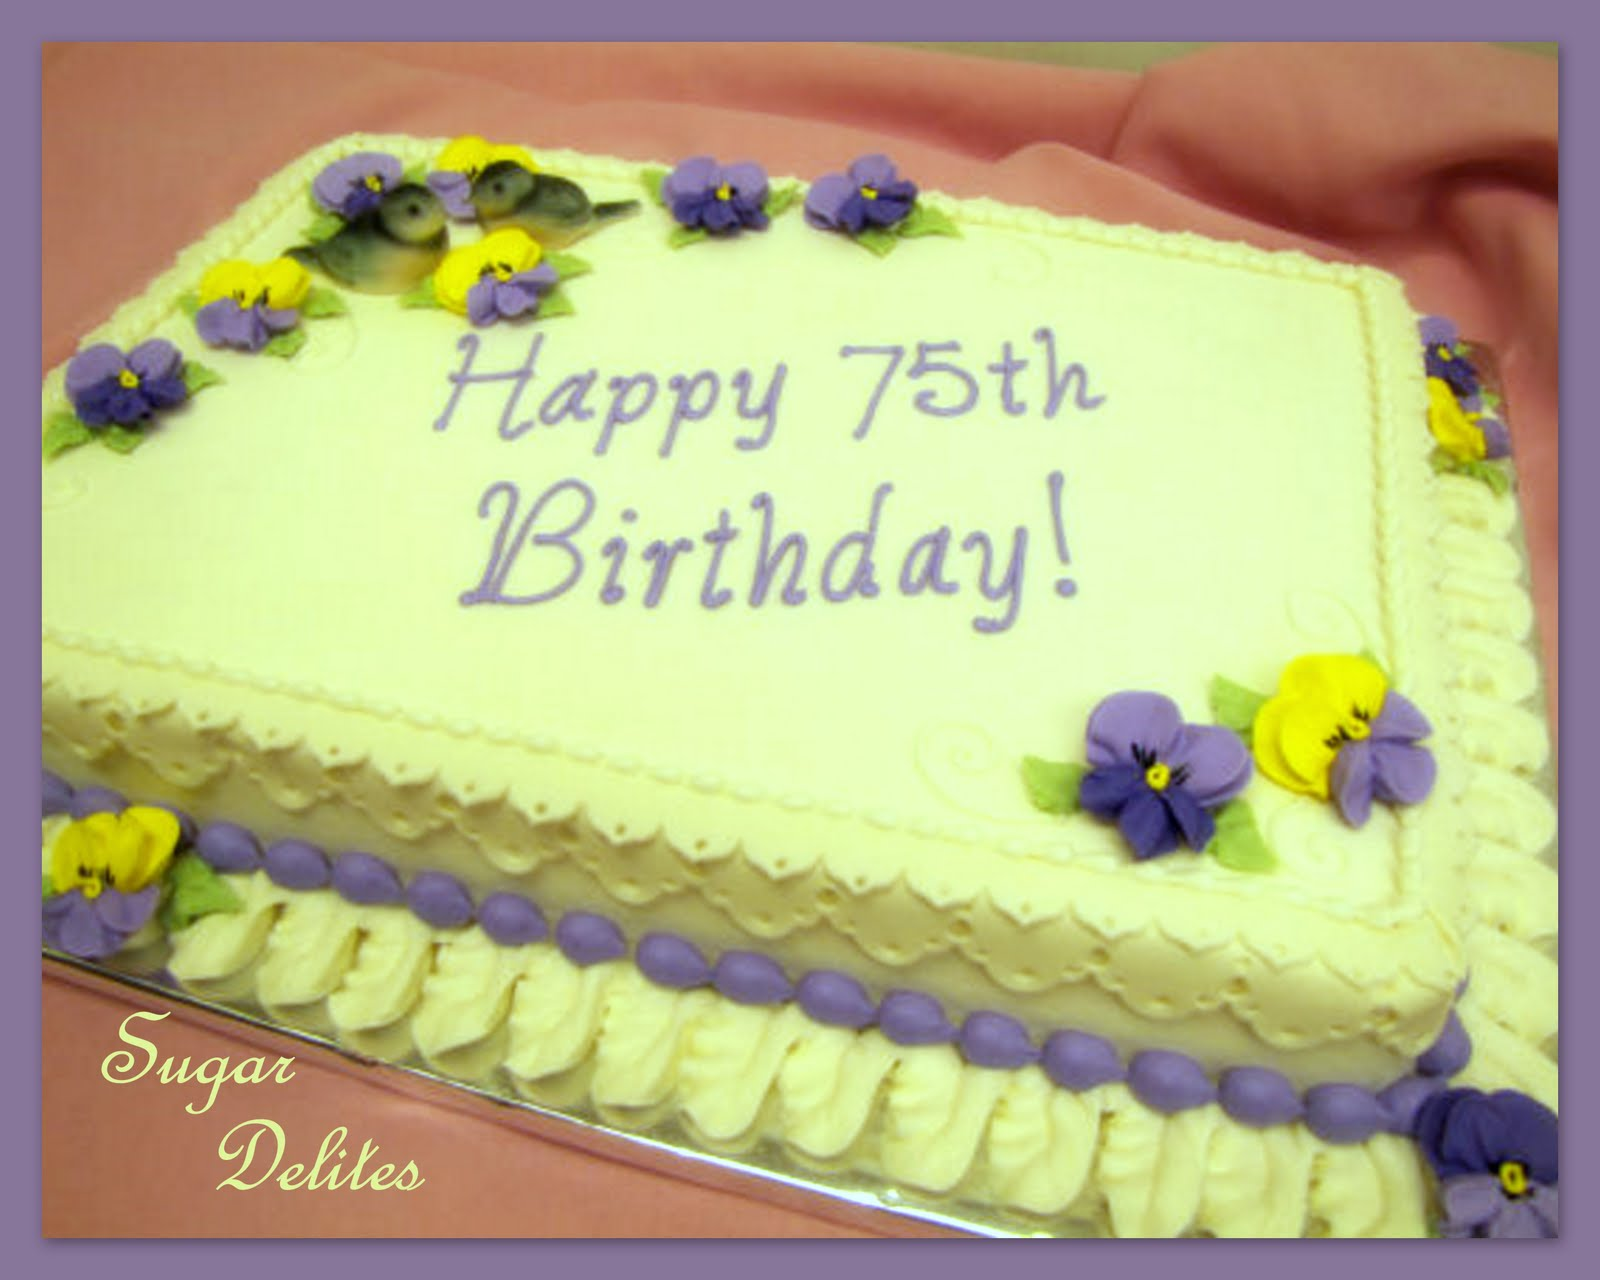 Cake Decorating Borders : ~ Sugar Teachers ~ Cake Decorating and Sugar Art Tutorials ...